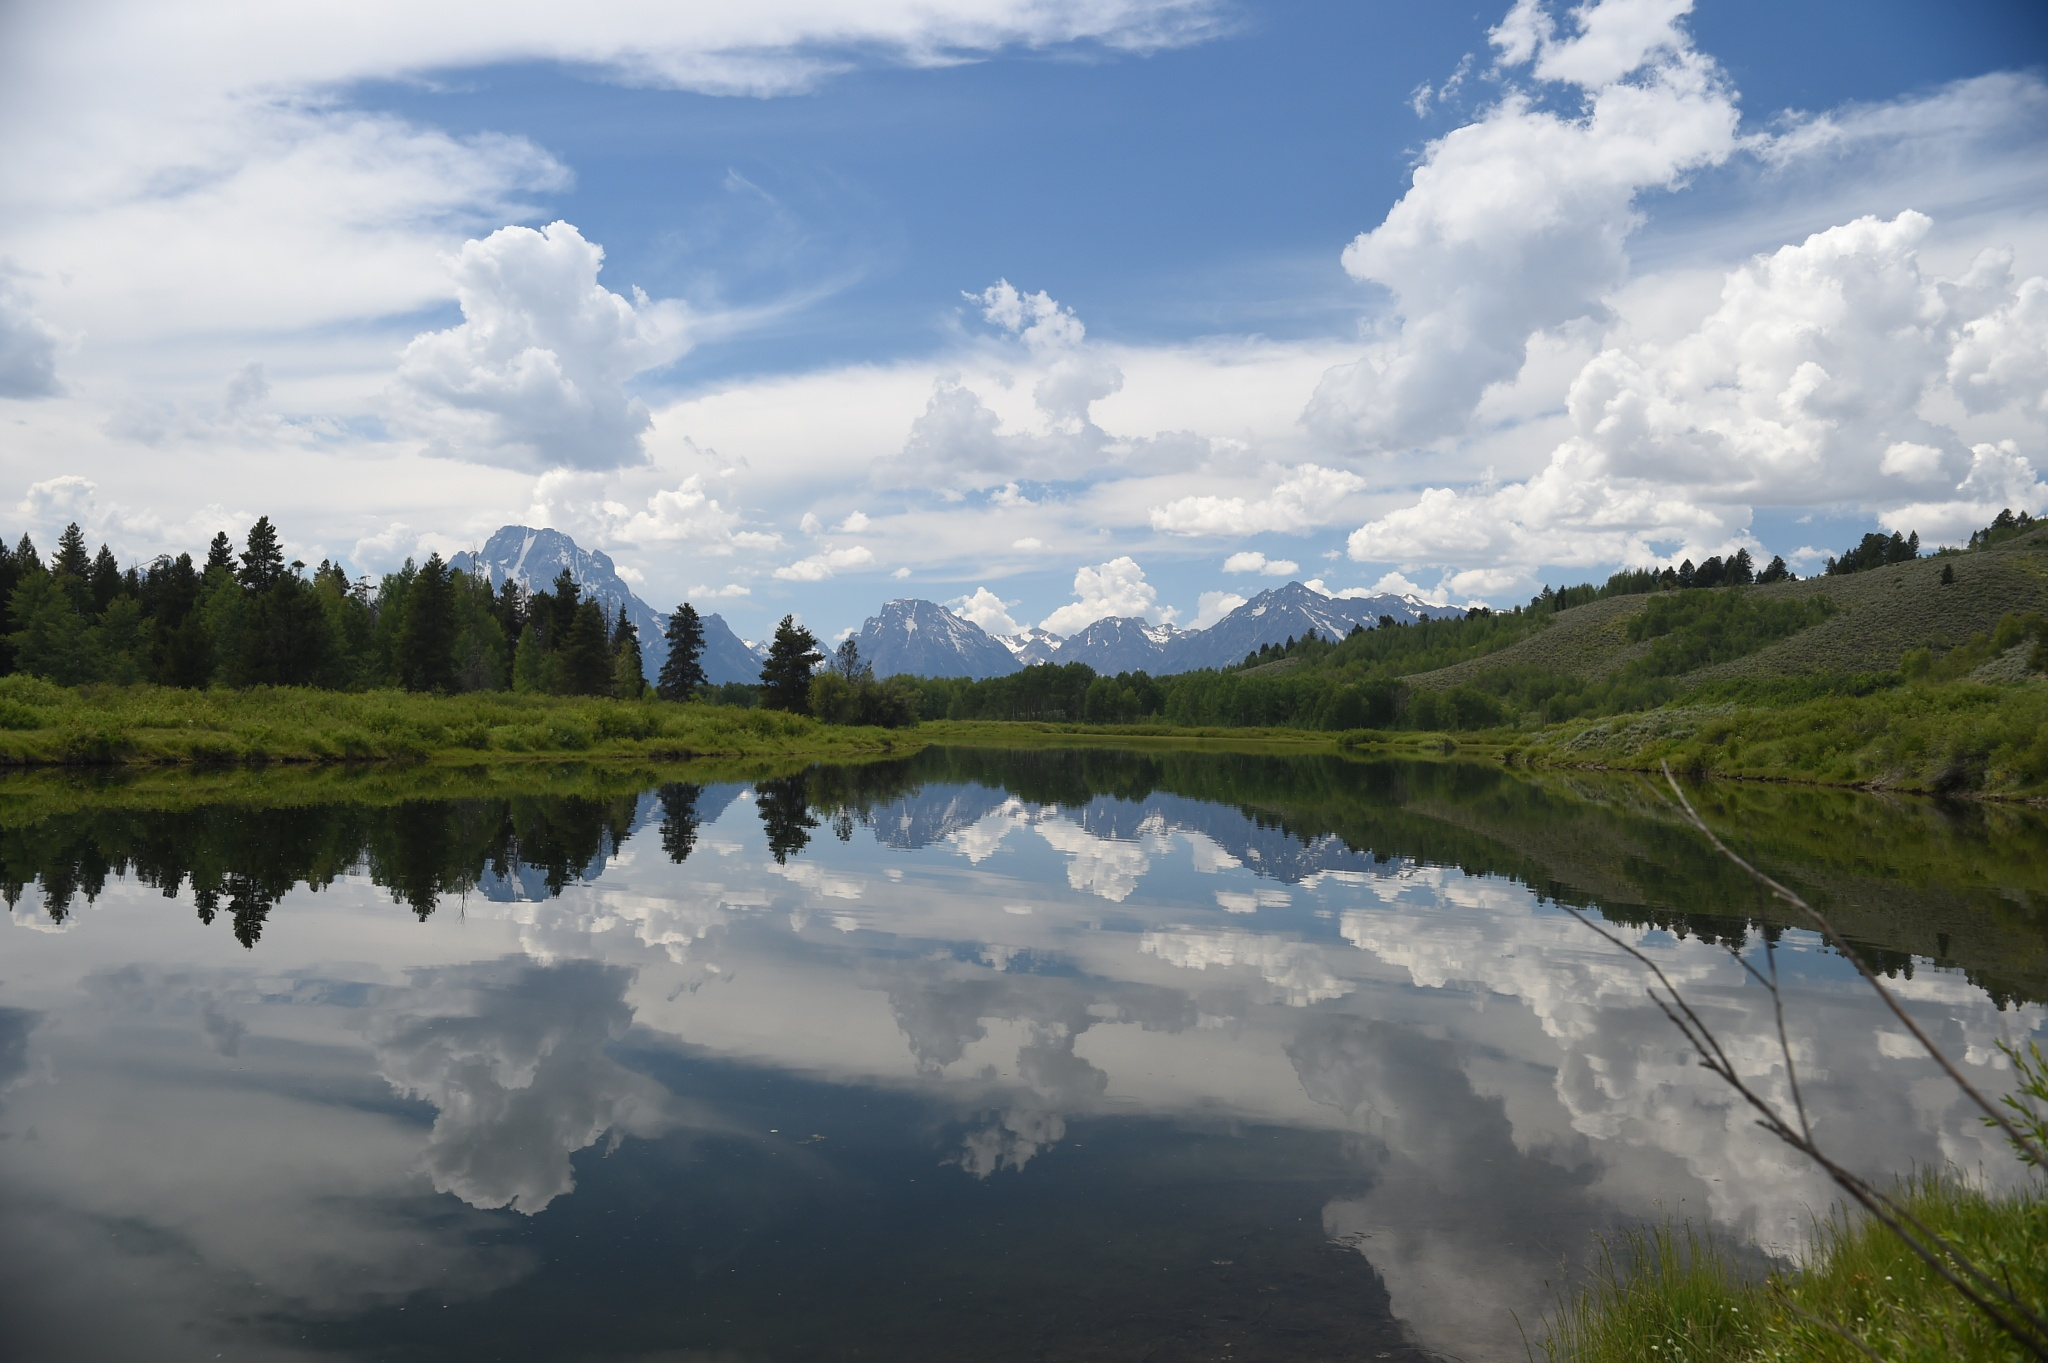 Oxbow Bend Turnout by williamtai8